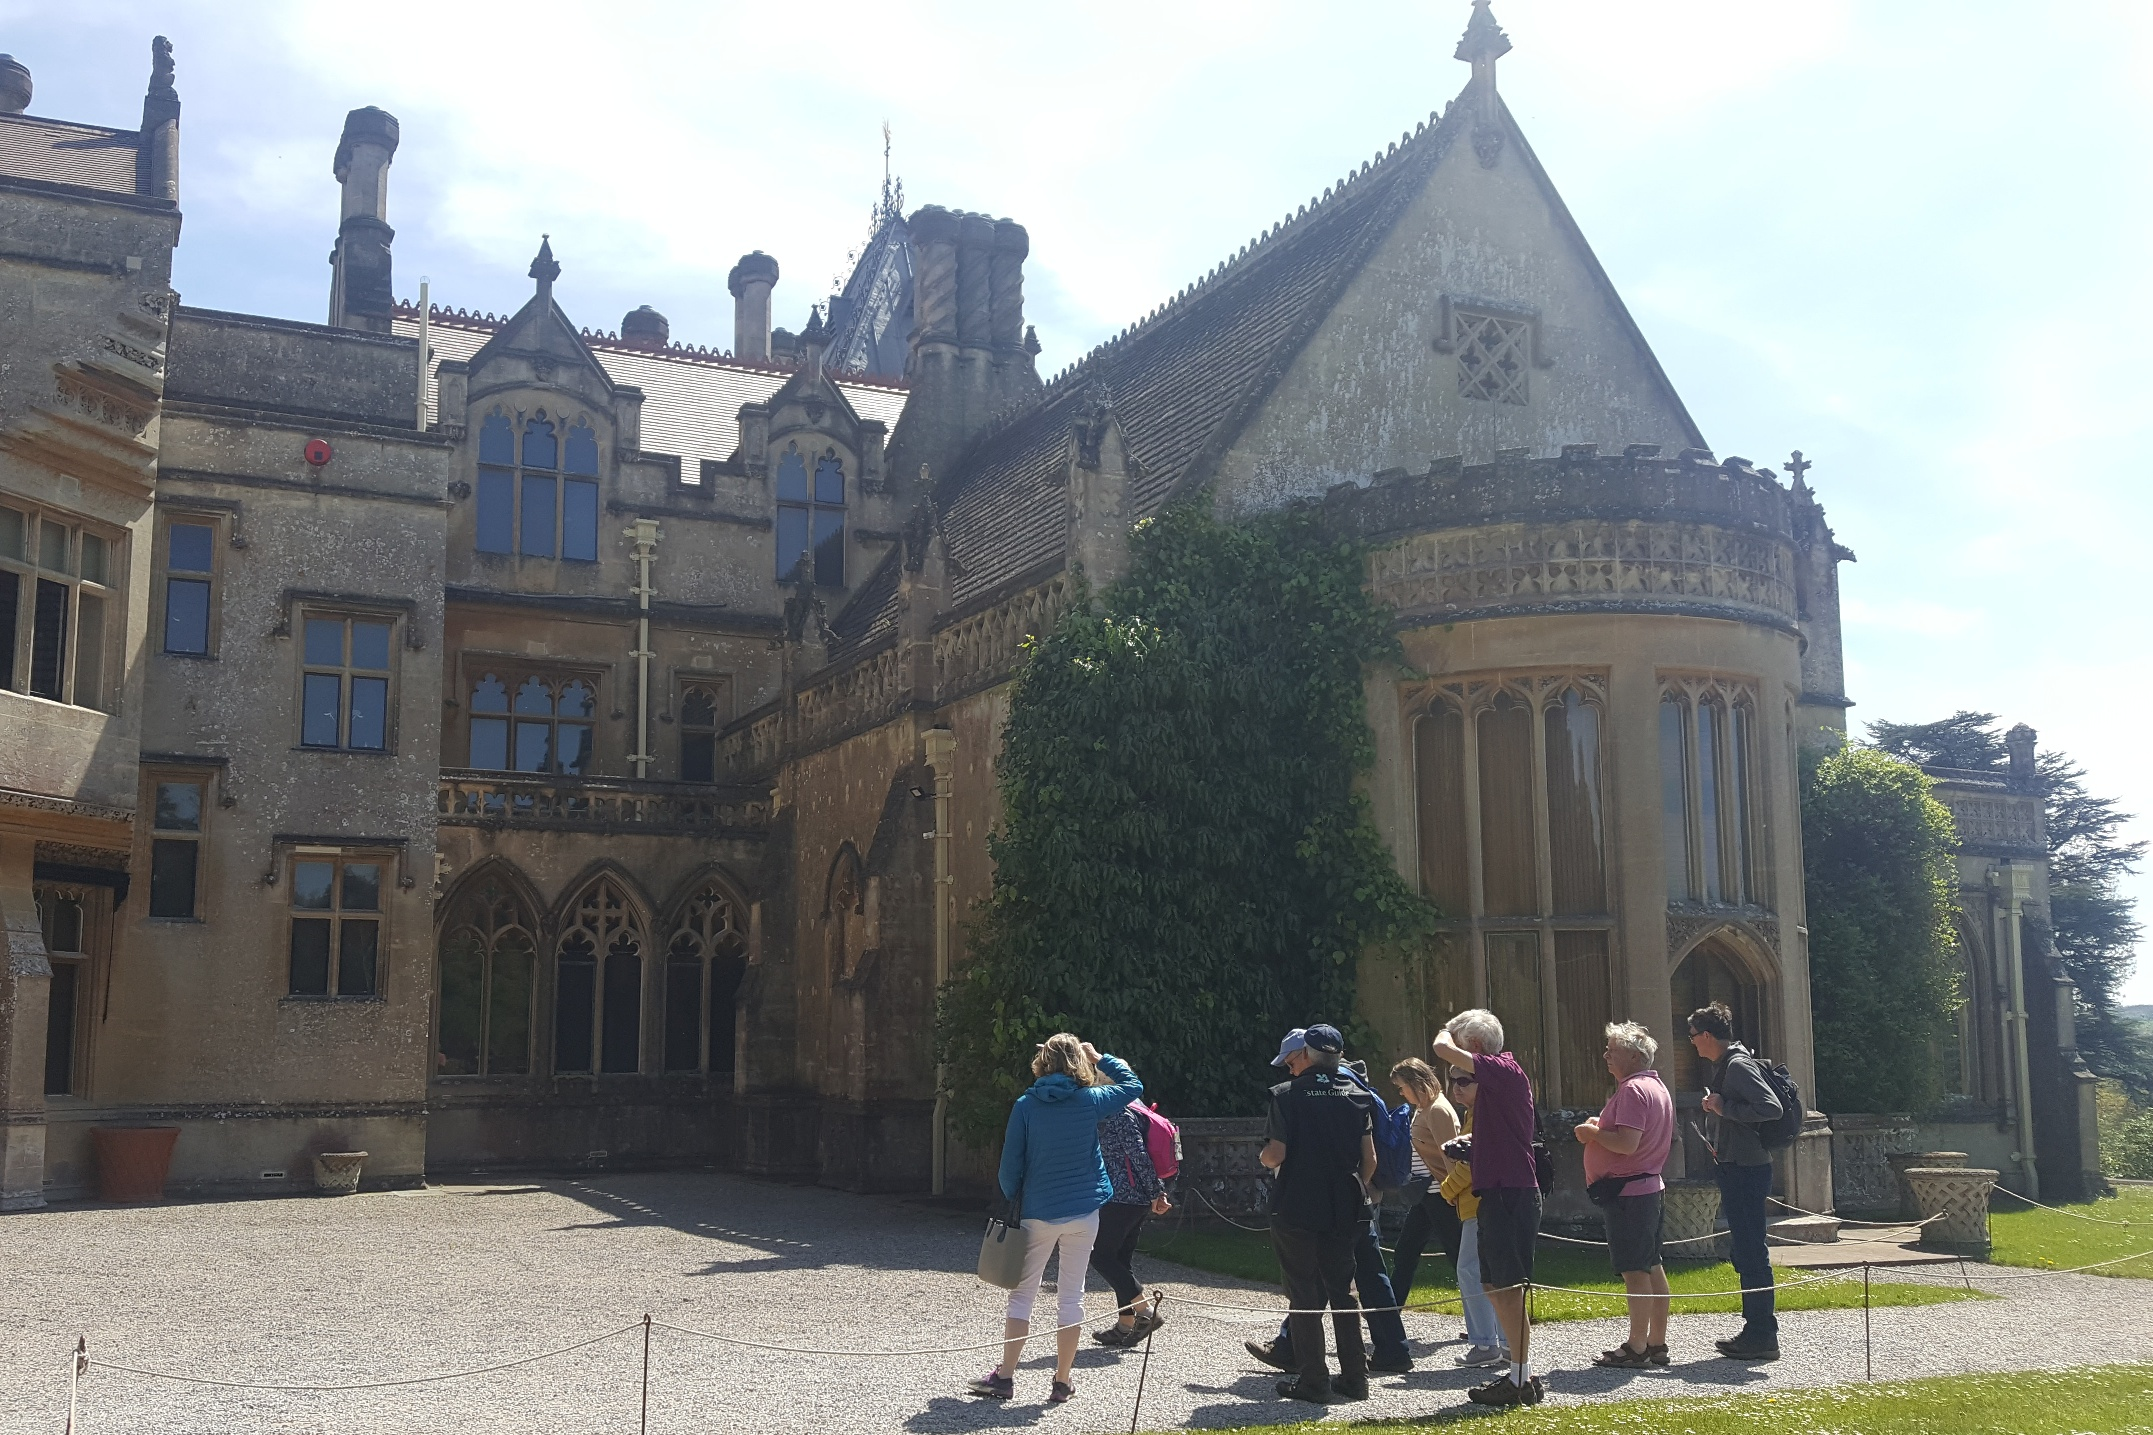 Visit to Tyntesfield